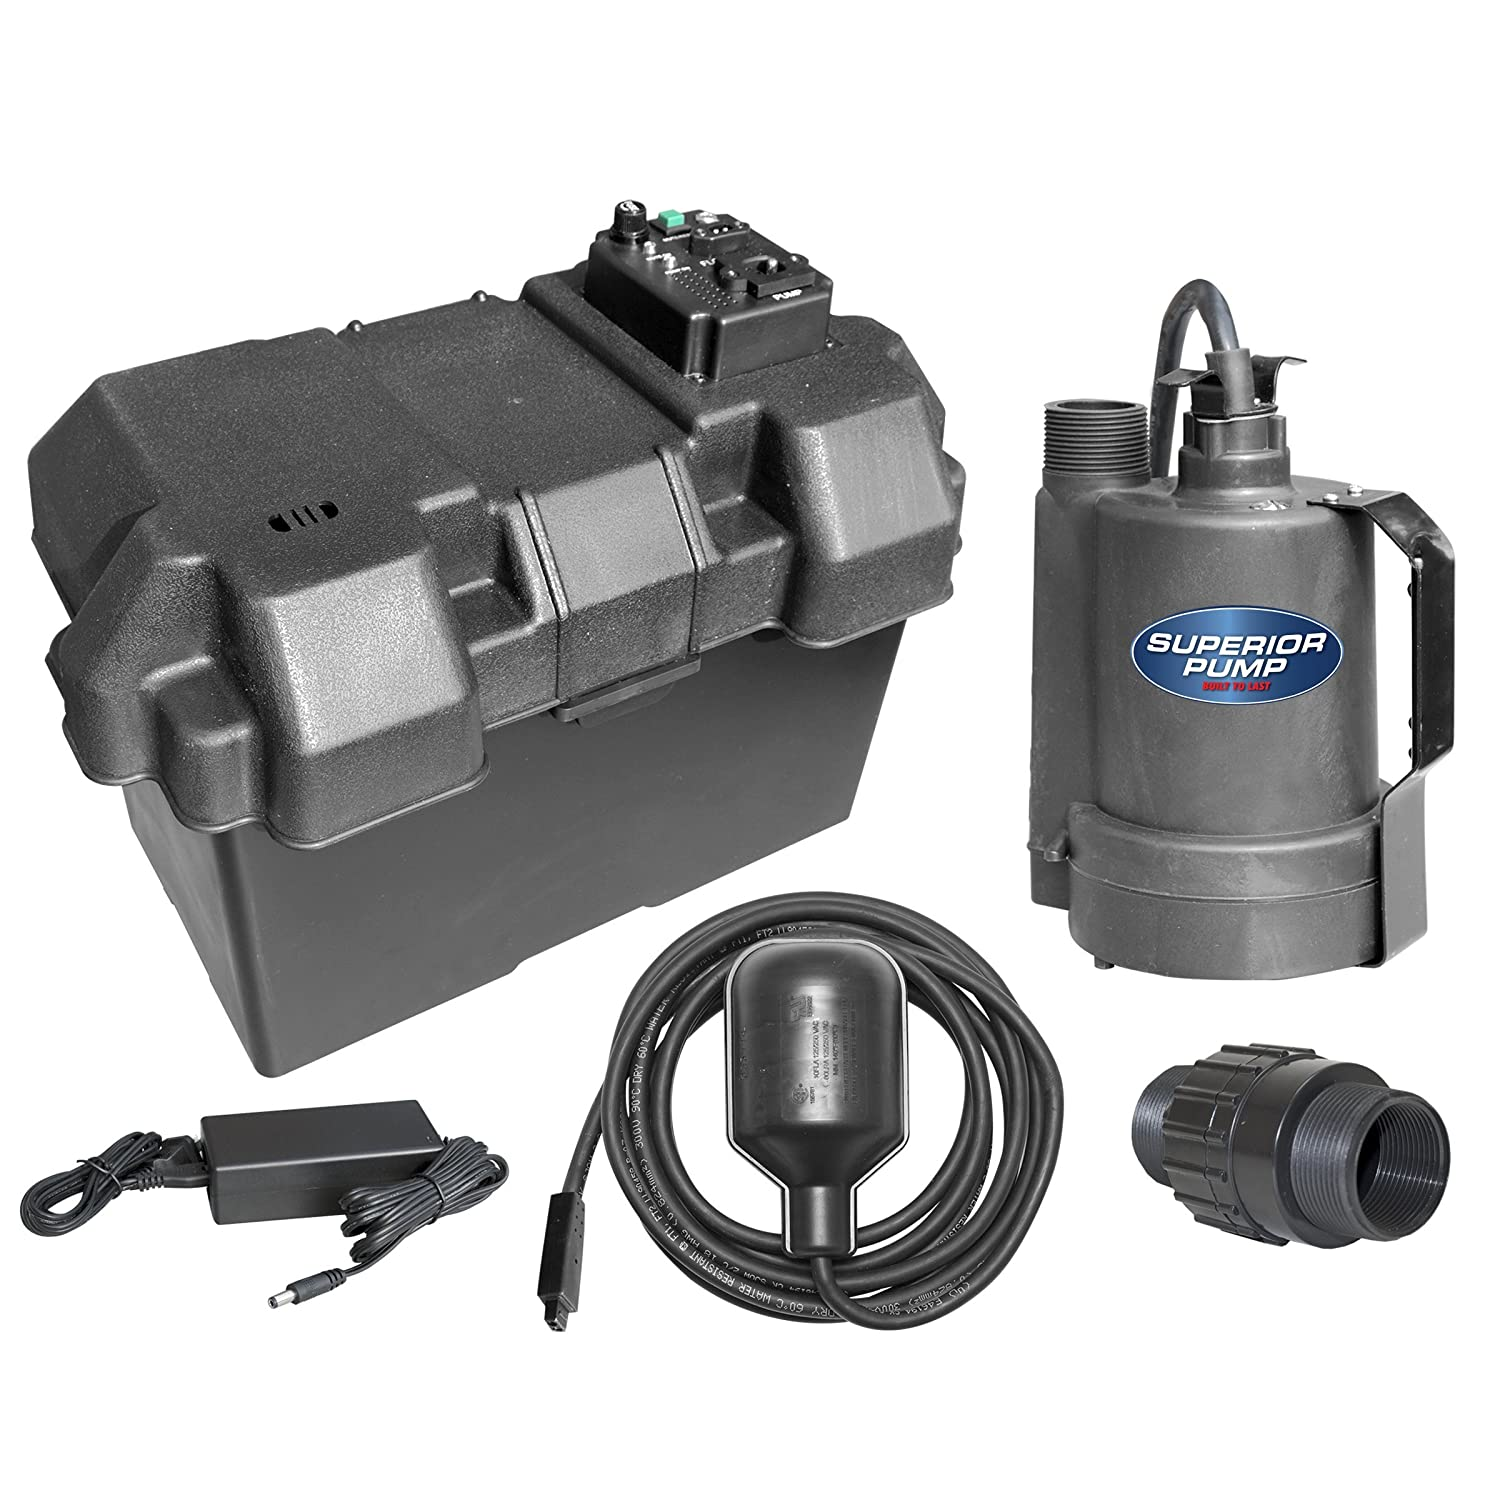 Superior Pump 92900 Powered Battery Back Up Sump Pump With Tethered Switch,  12V DC - - Amazon.com